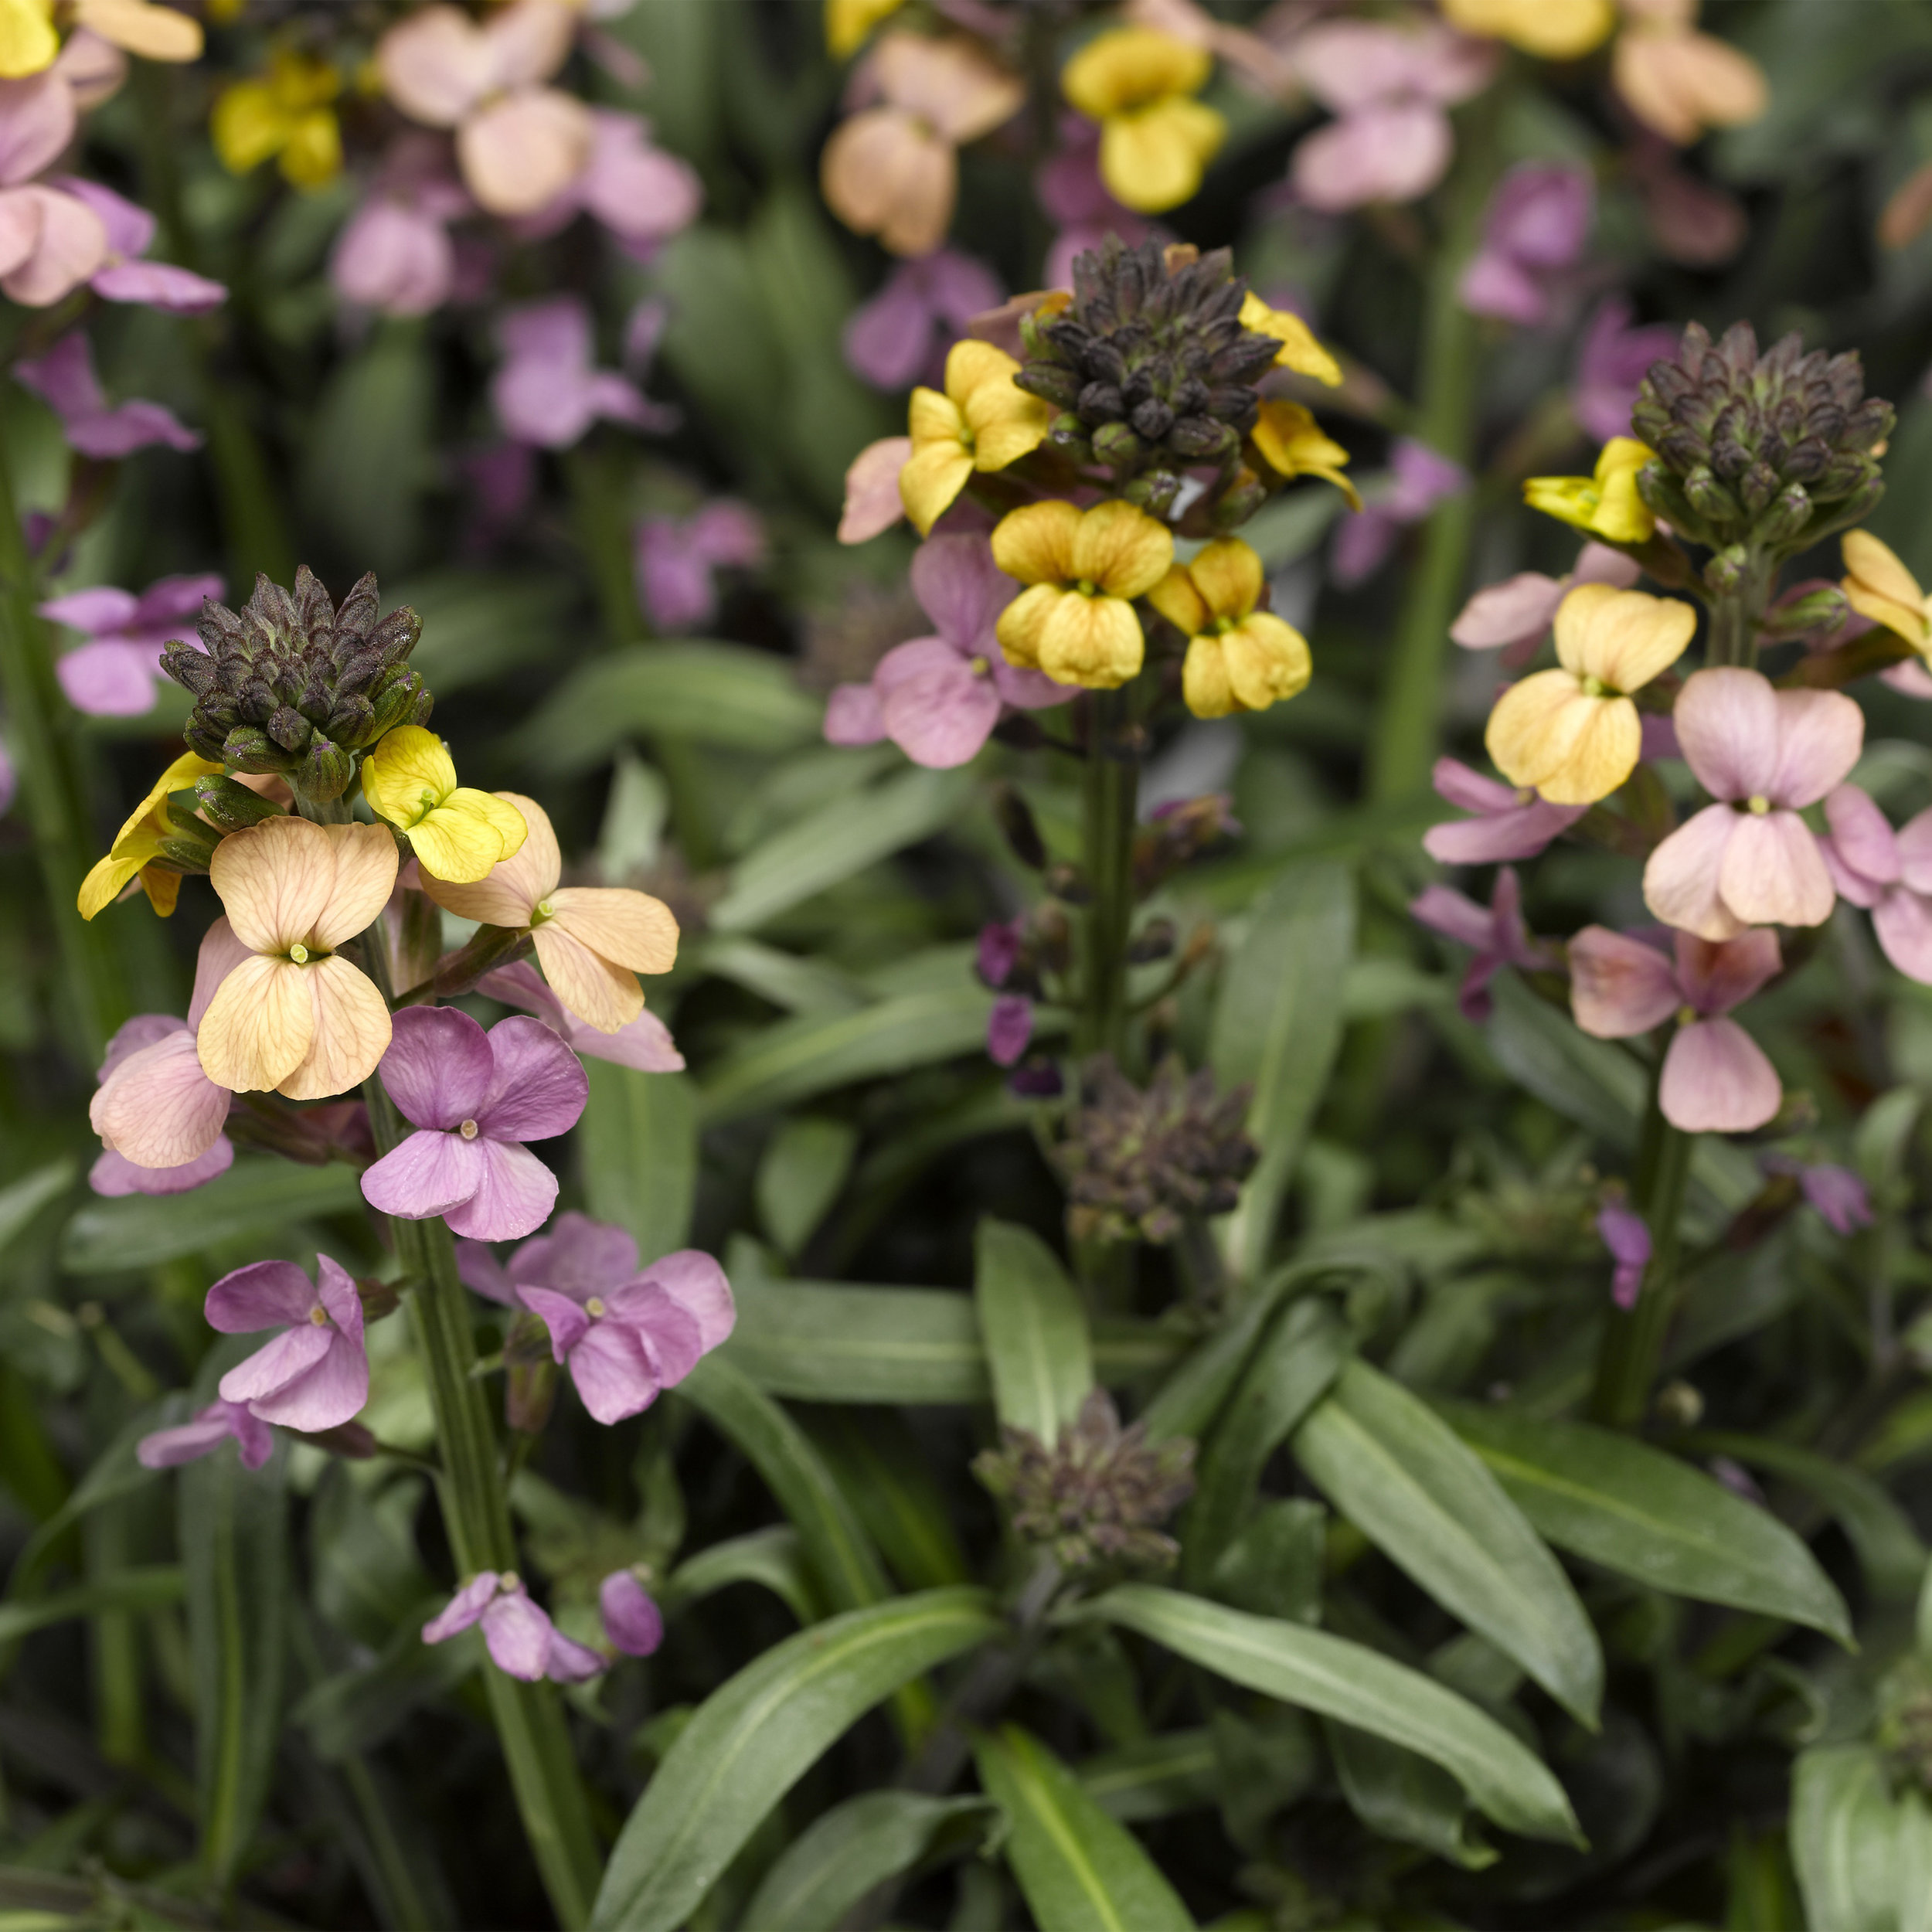 HR_Vegetative_Erysimum_Super_Bowl™_Super_Bowl™_Sunset_70028052_1.jpg